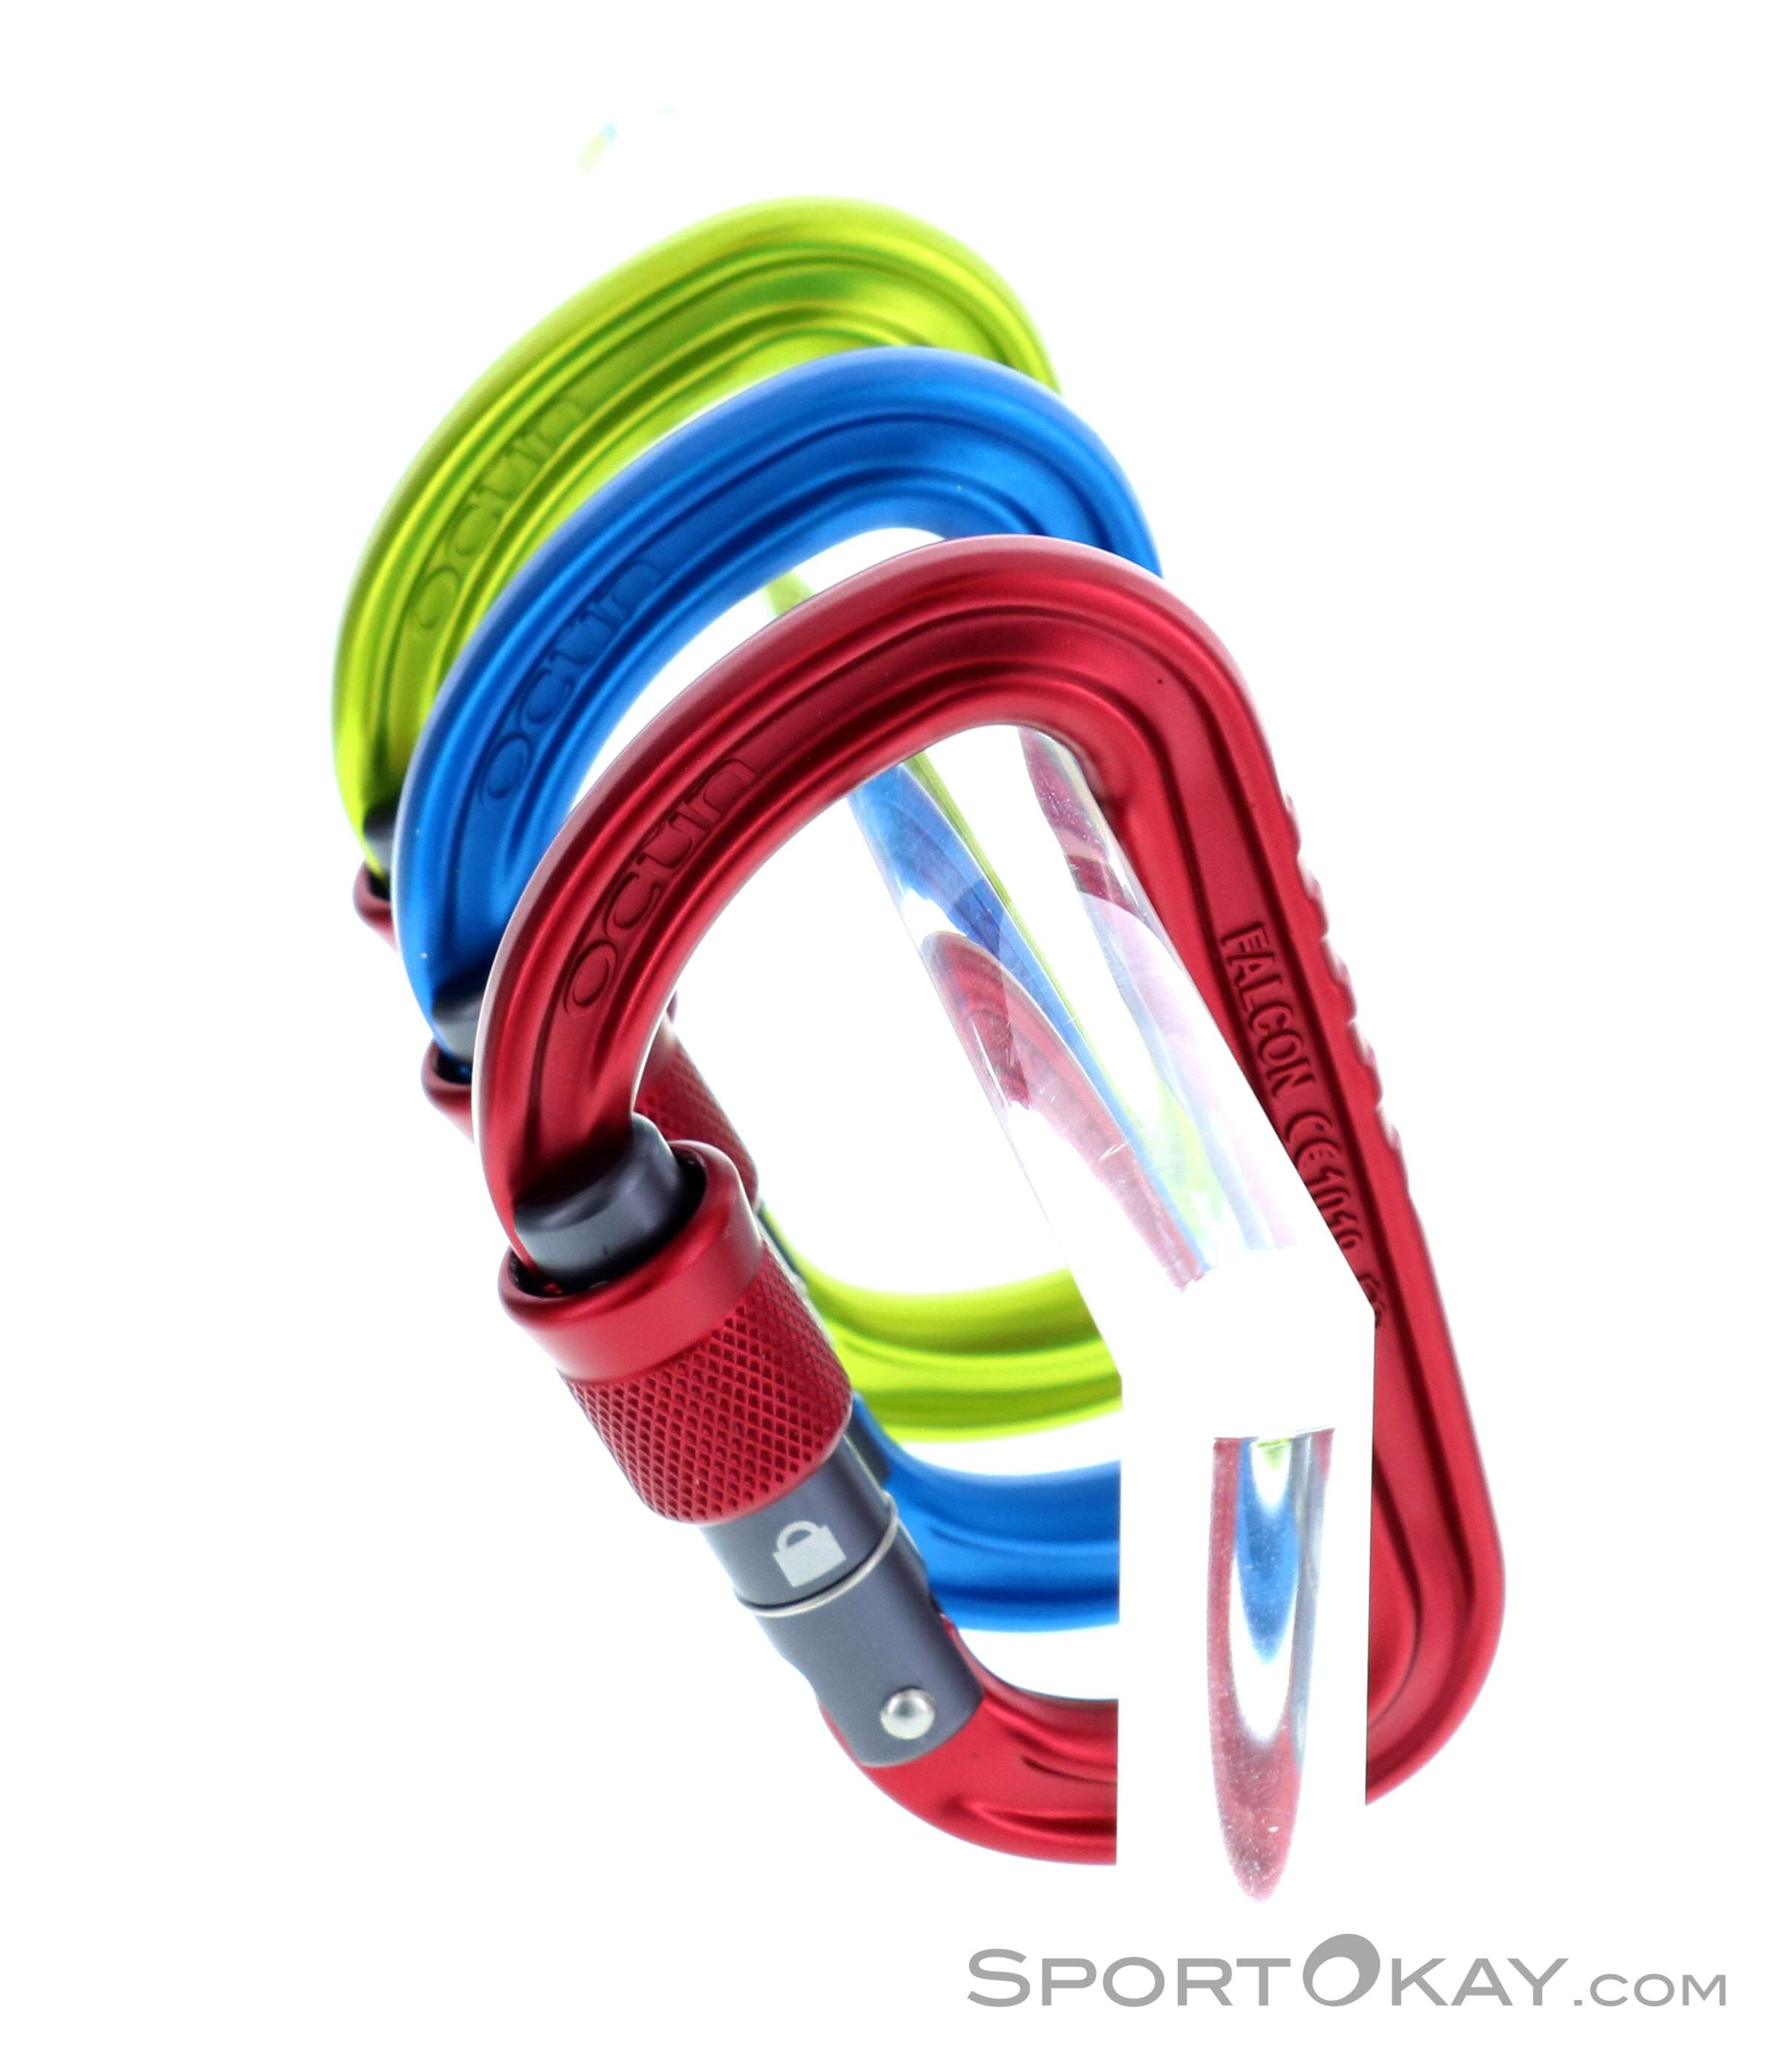 120cm Safety Rock Tree Climbing Express Quickdraw Sling Webbing Strap Cord